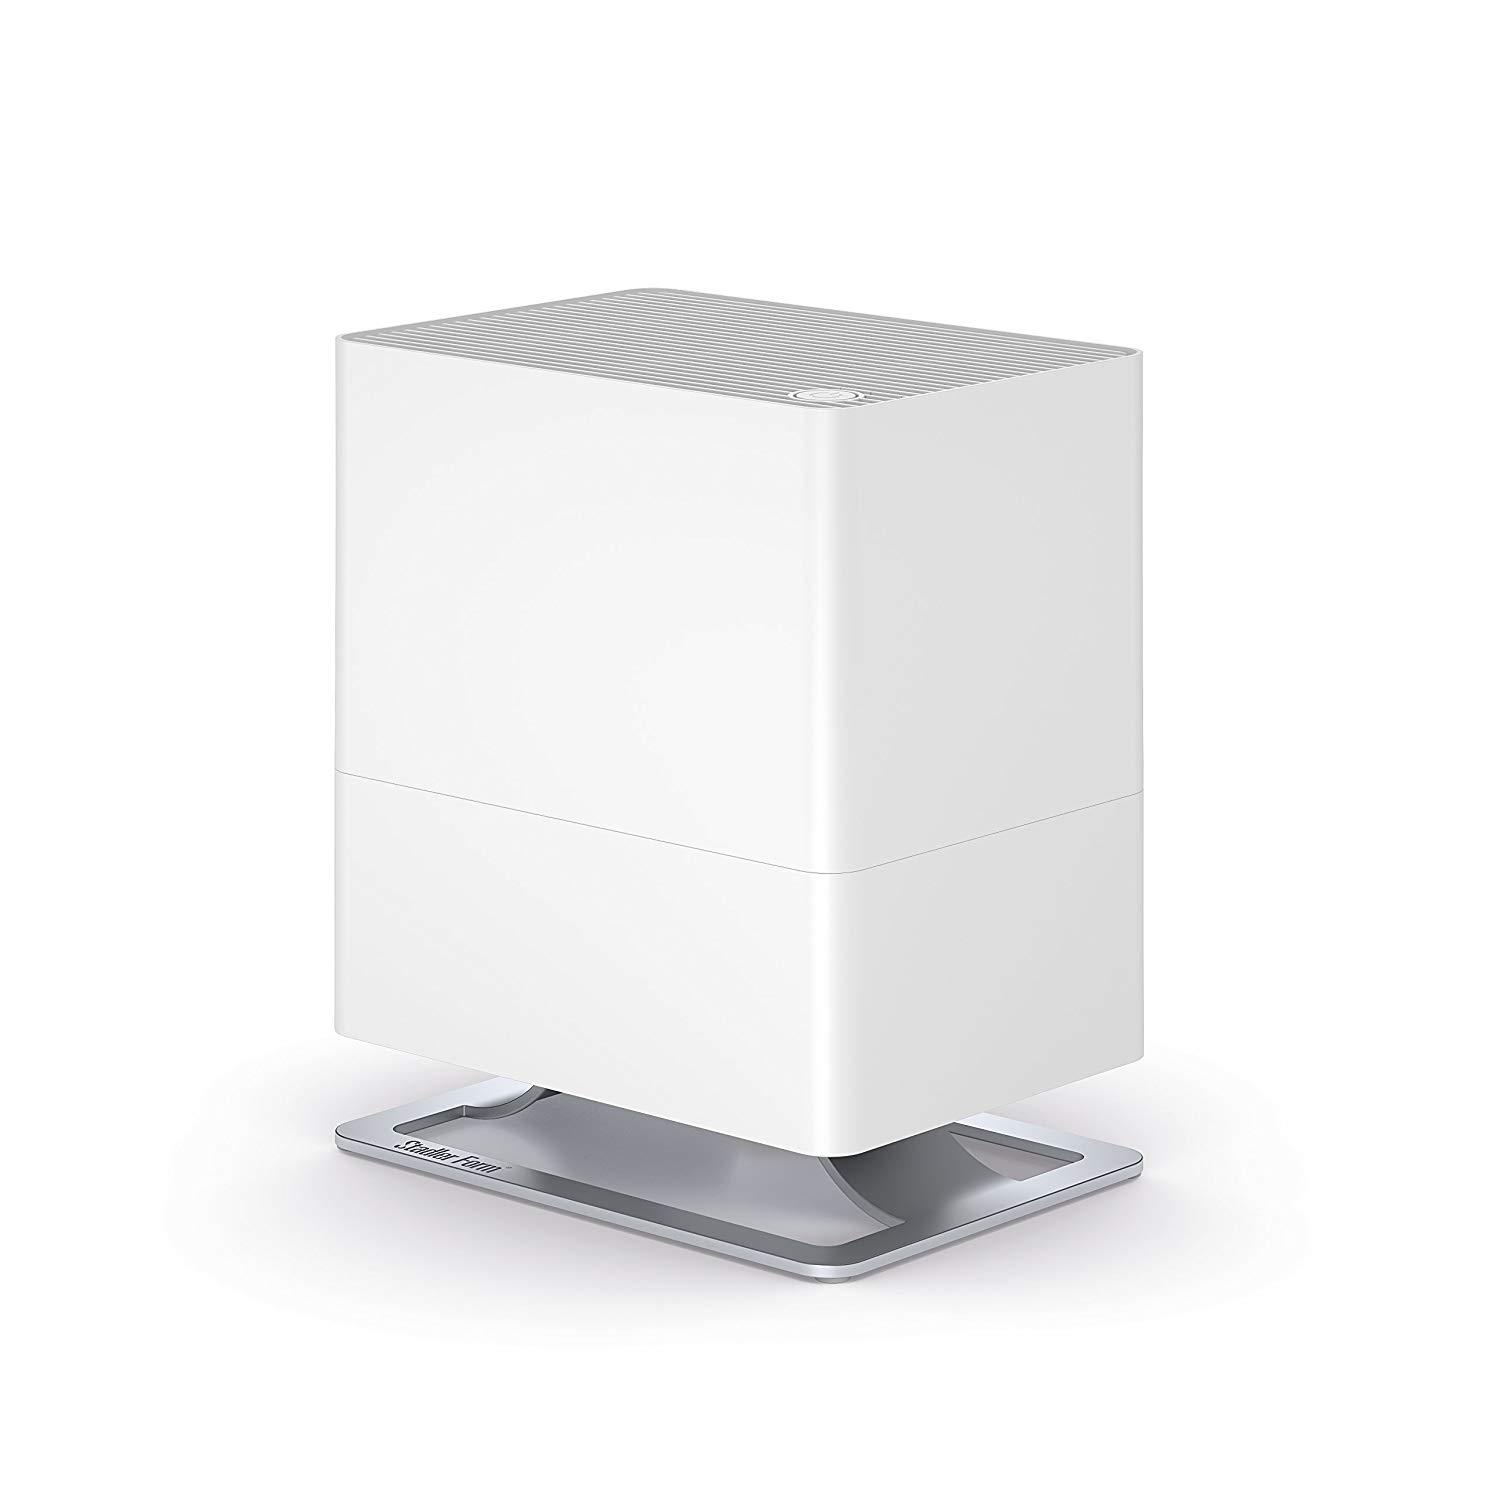 Stadler Form Humidifier Amazon